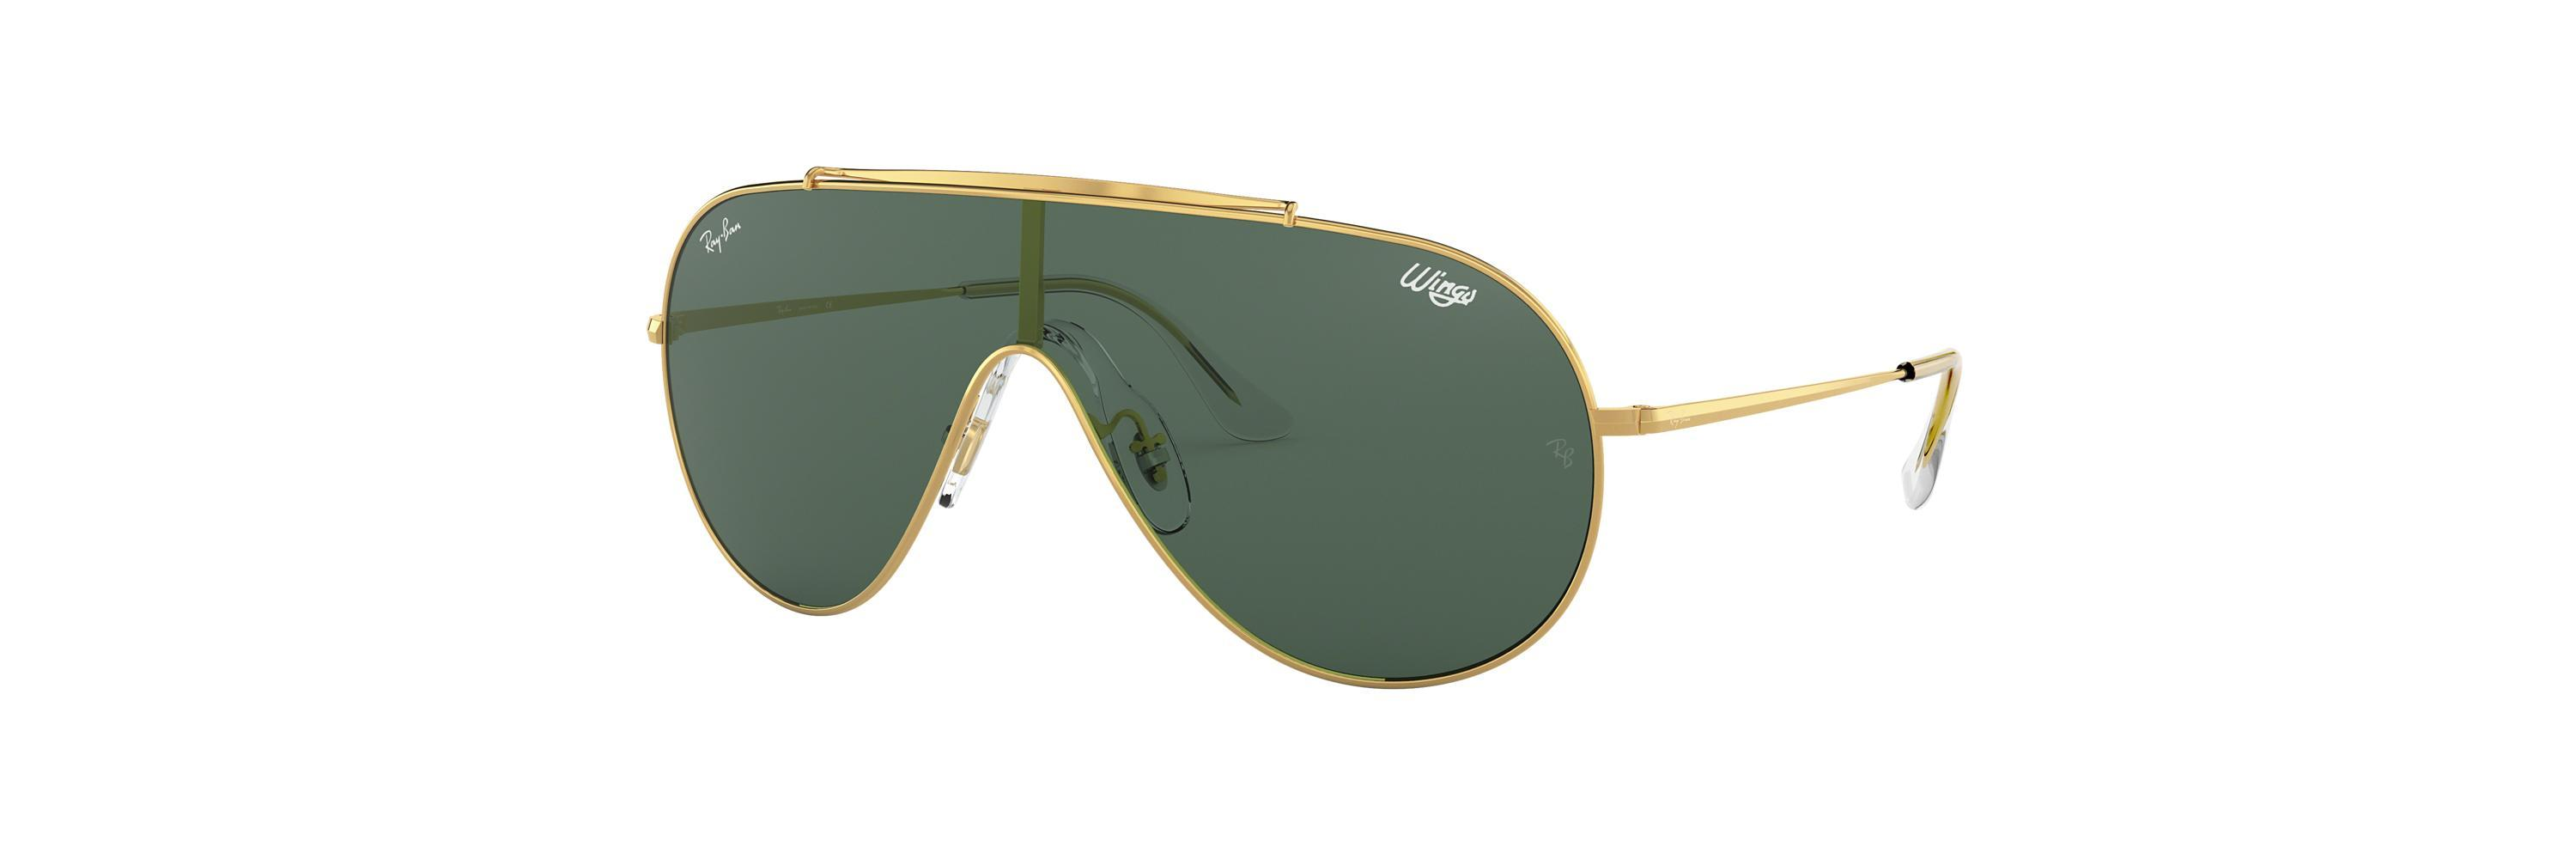 eb6c127d7465f Ray-Ban. Women s Green Rb3597.  173 From Sunglass Hut